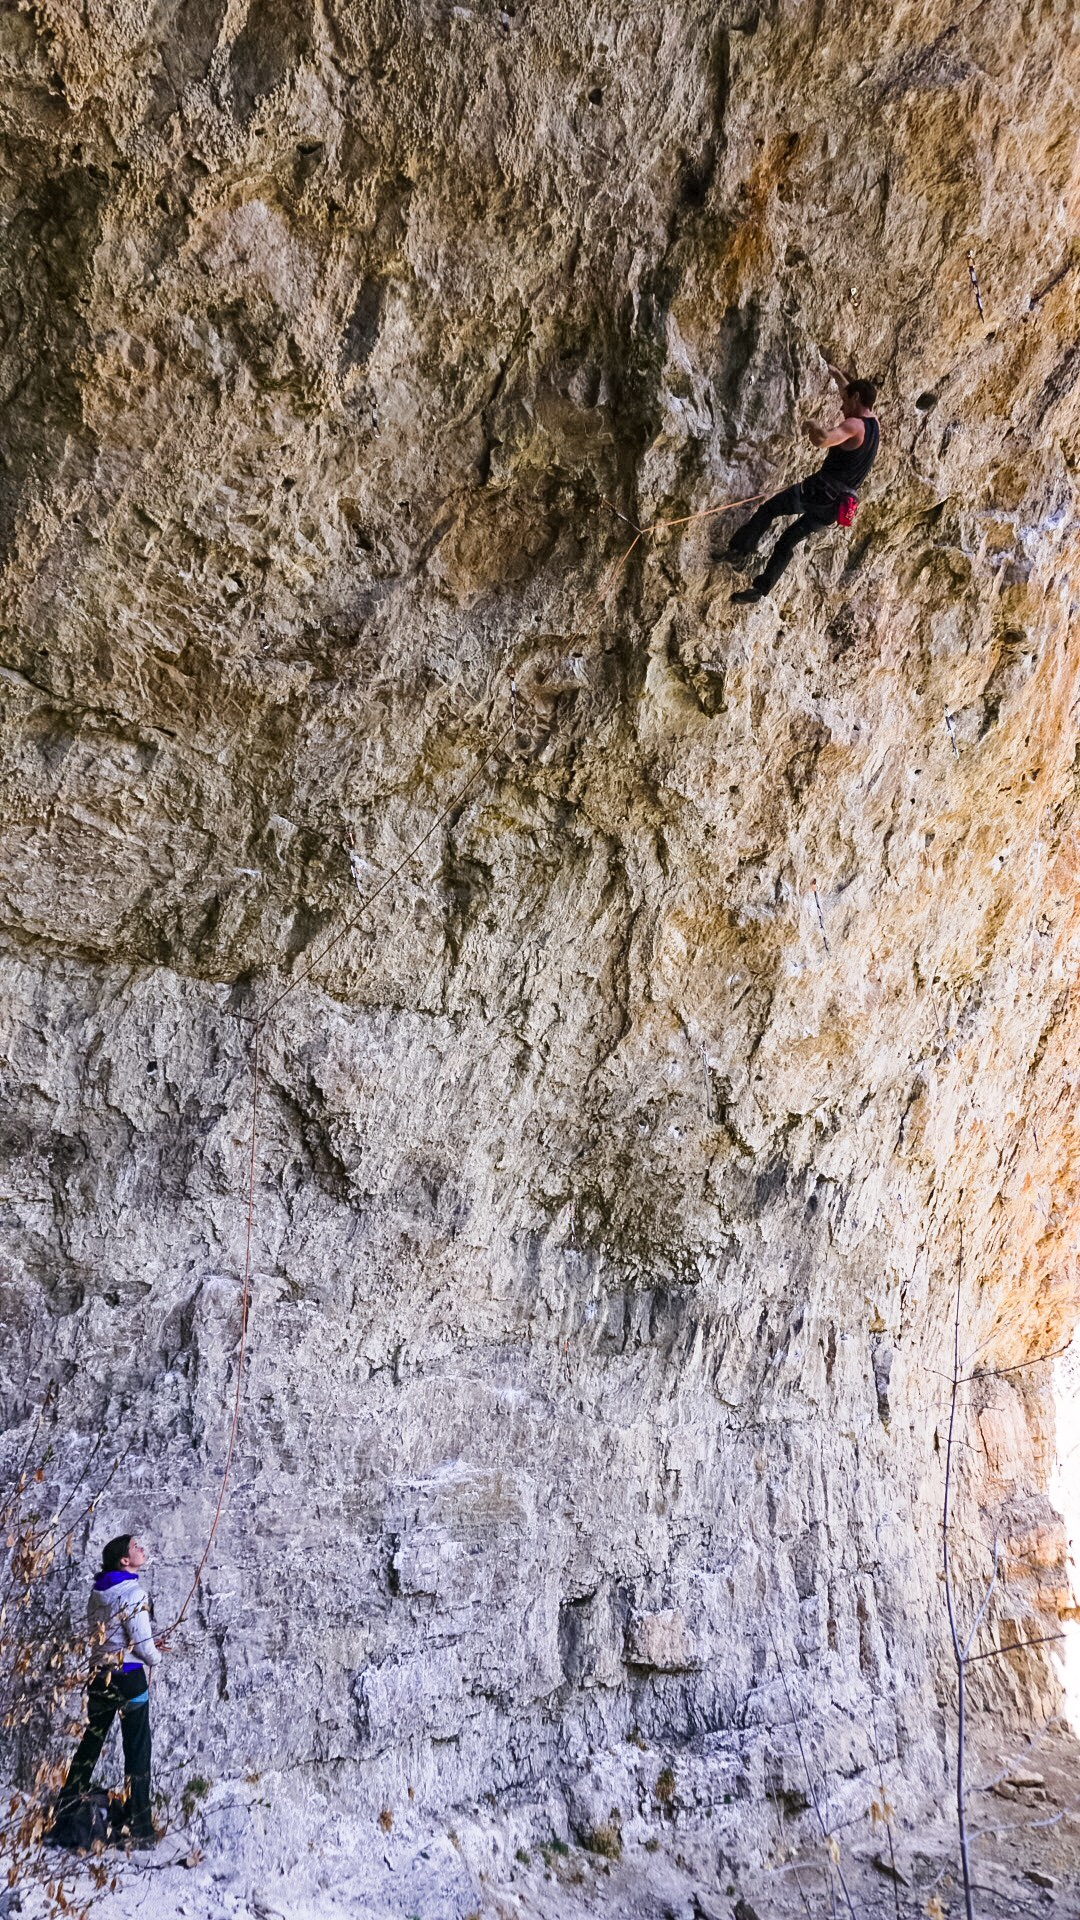 Carlo Traversi, with beta on lock, floating to the top of Bad Girls Club (5.14d), Rifle, Colorado. Photo by Steve Hong.